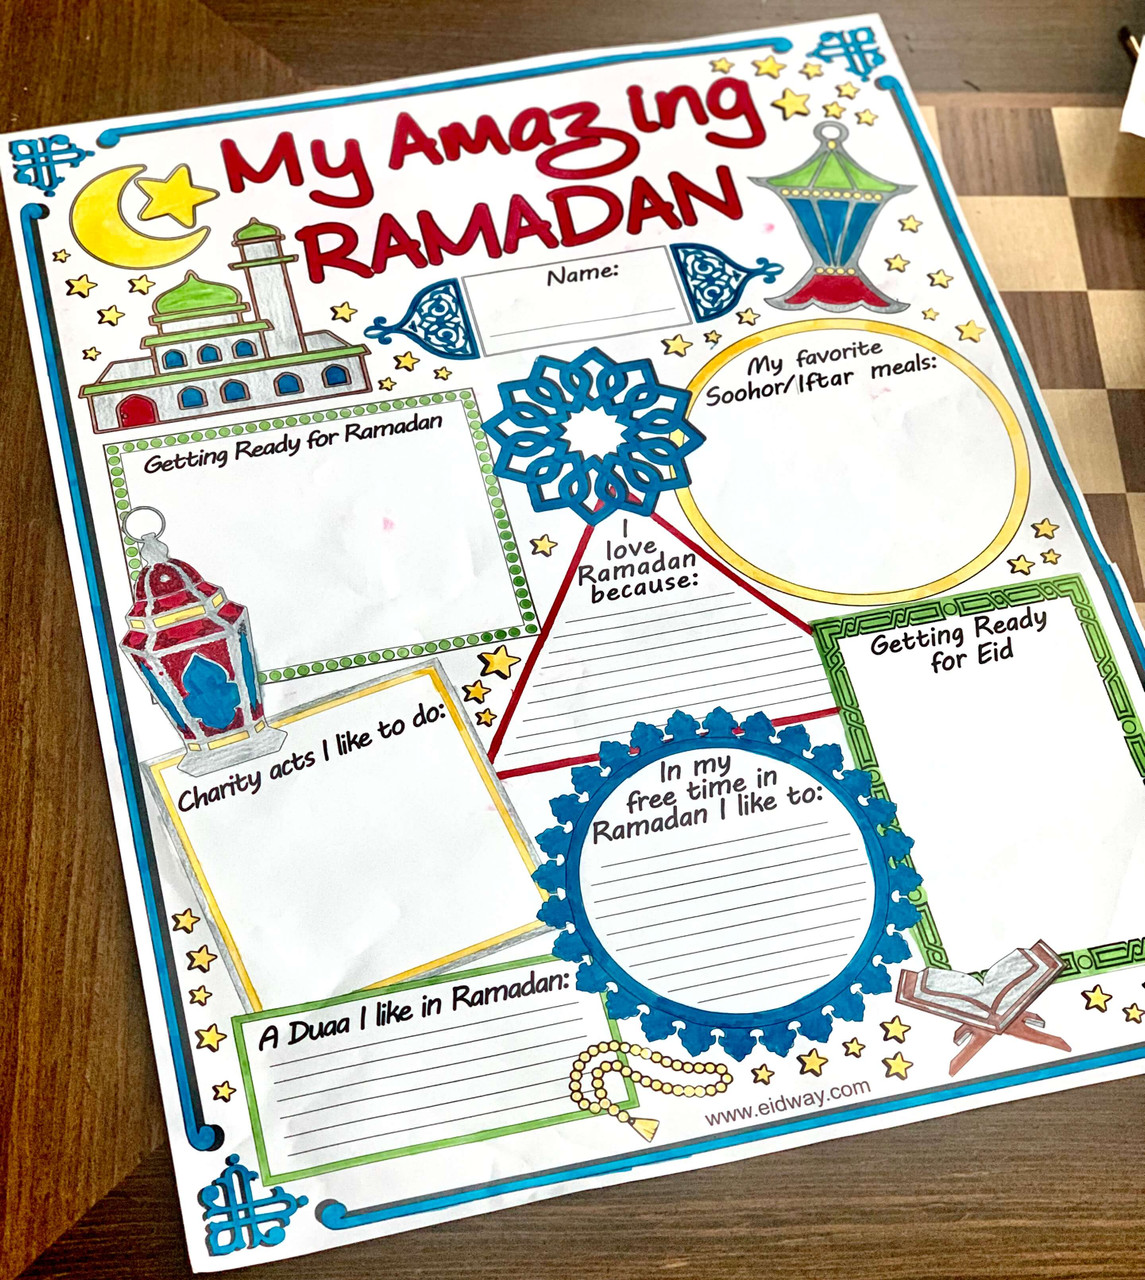 12 My Amazing Ramadan Posters ($1.50 Each)